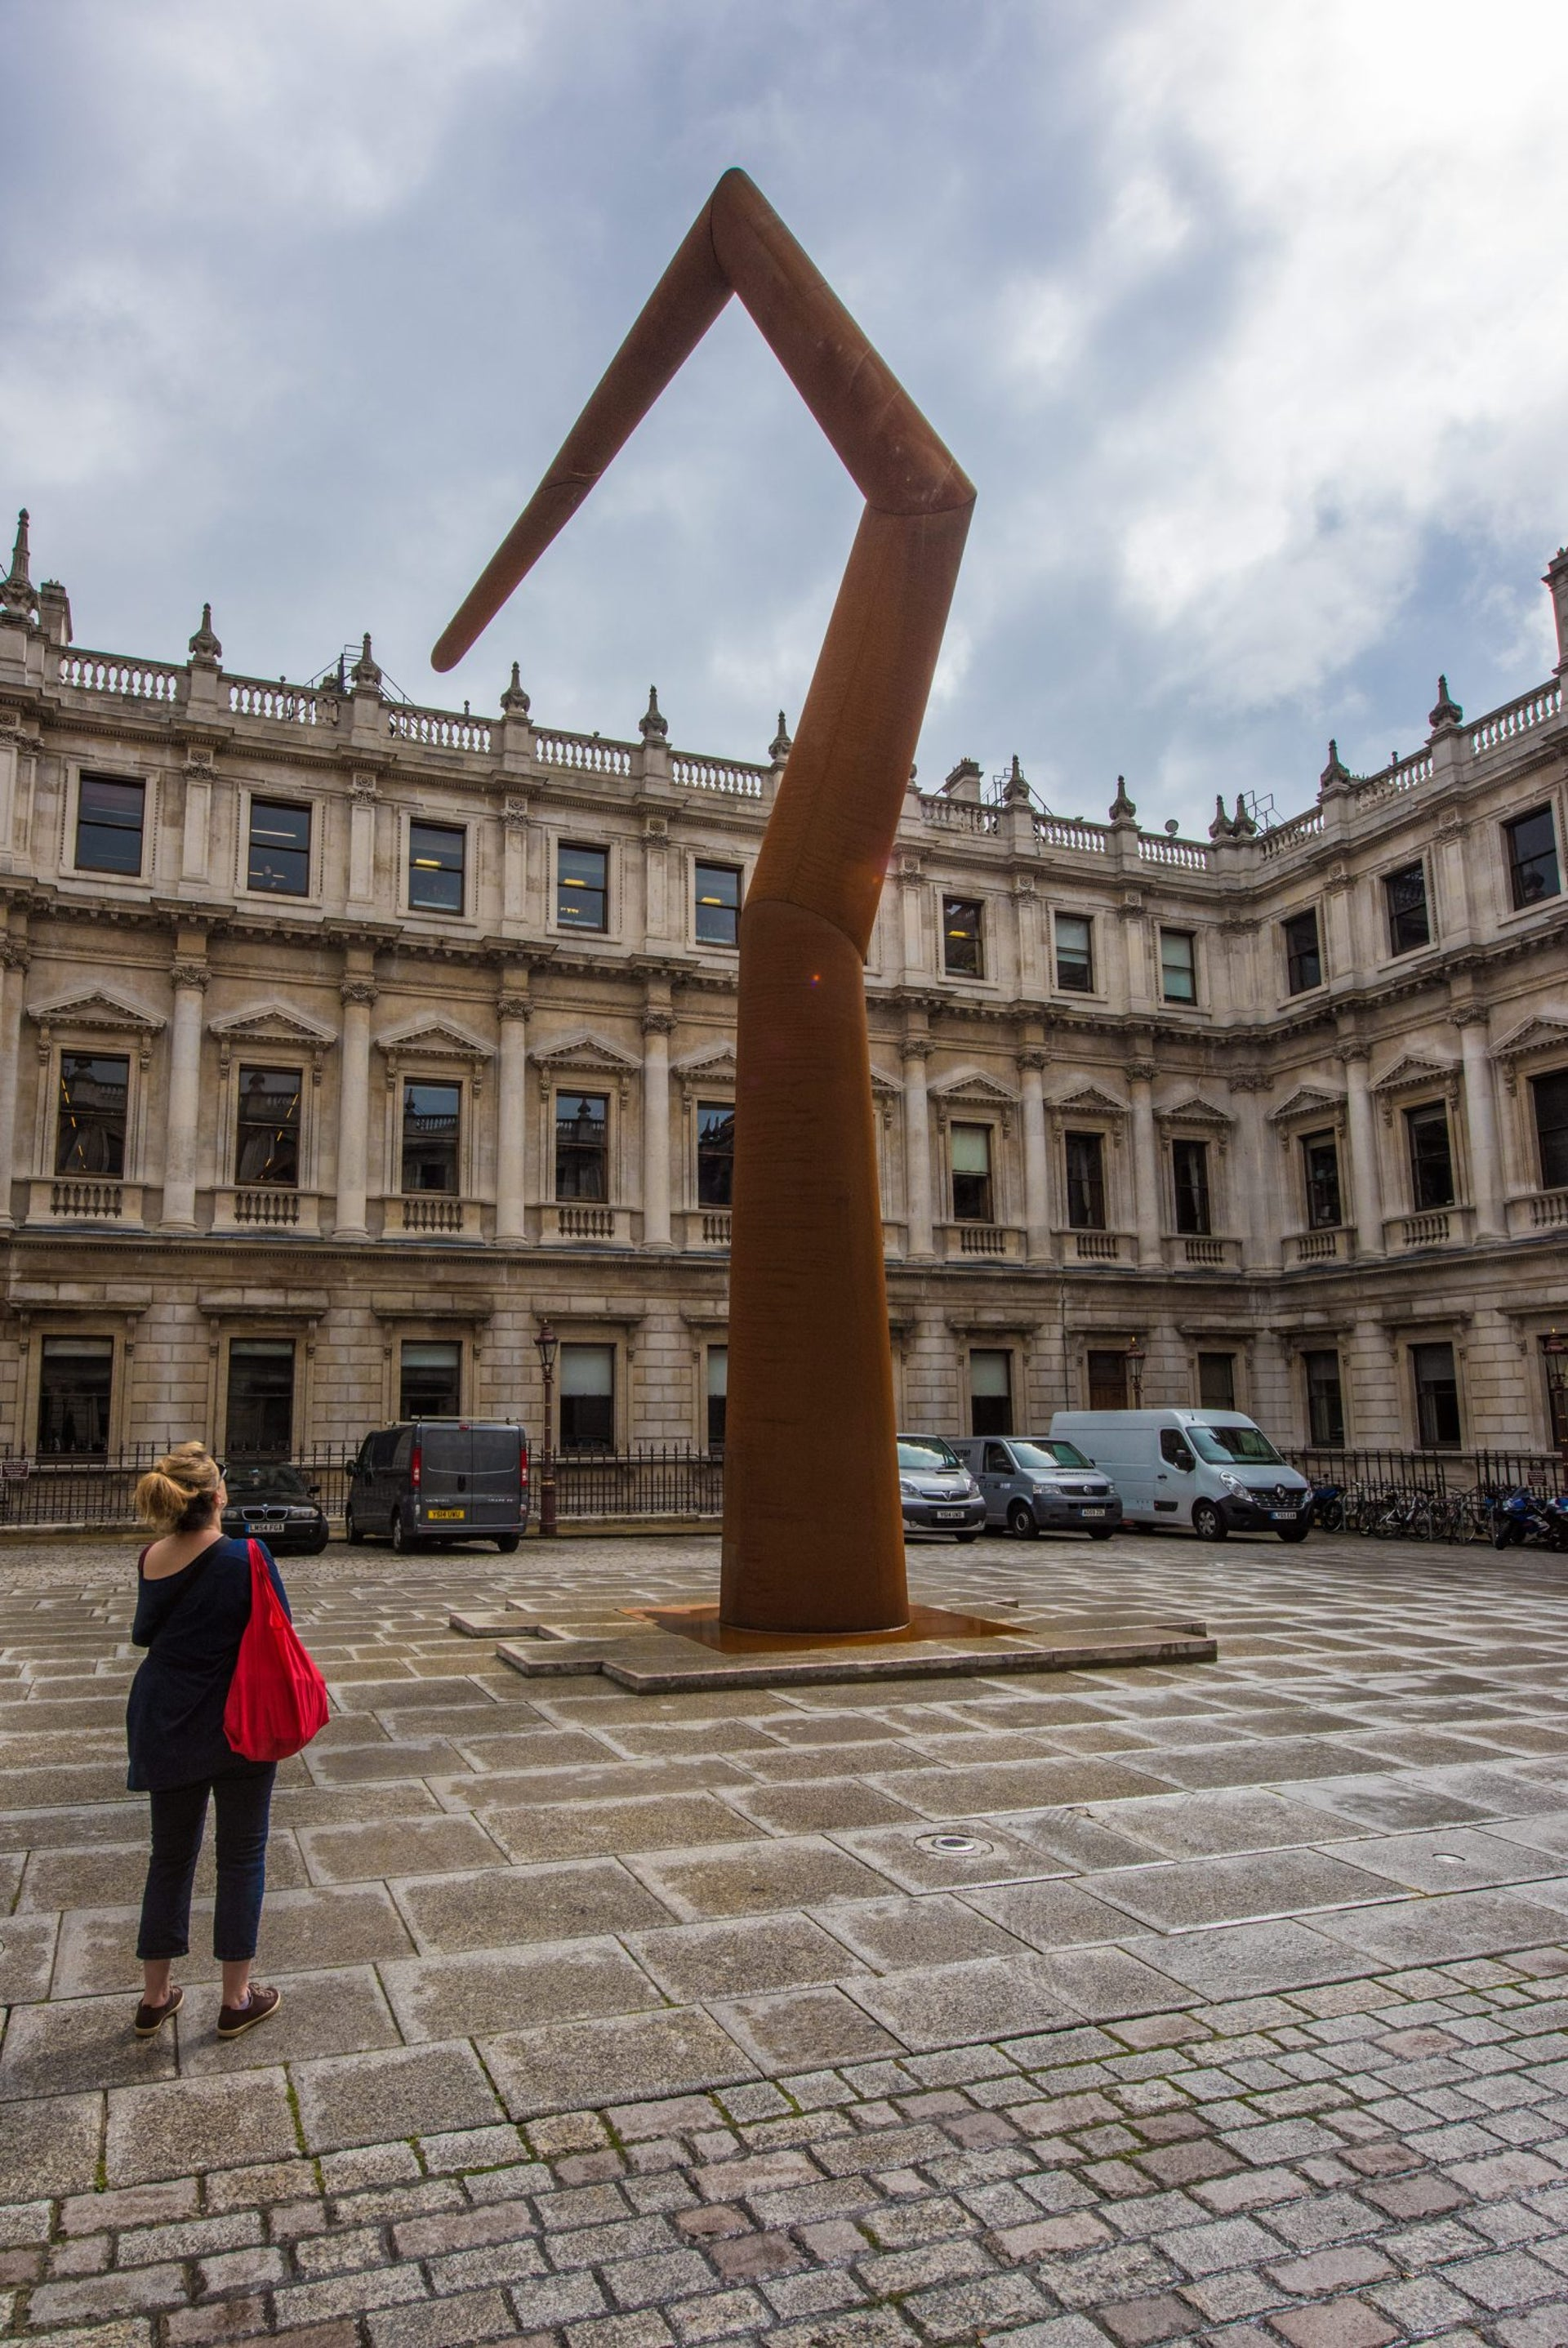 """""""Spyre,"""" a sculpture by Ron Arad on display at the The Royal Academy of Arts in London."""